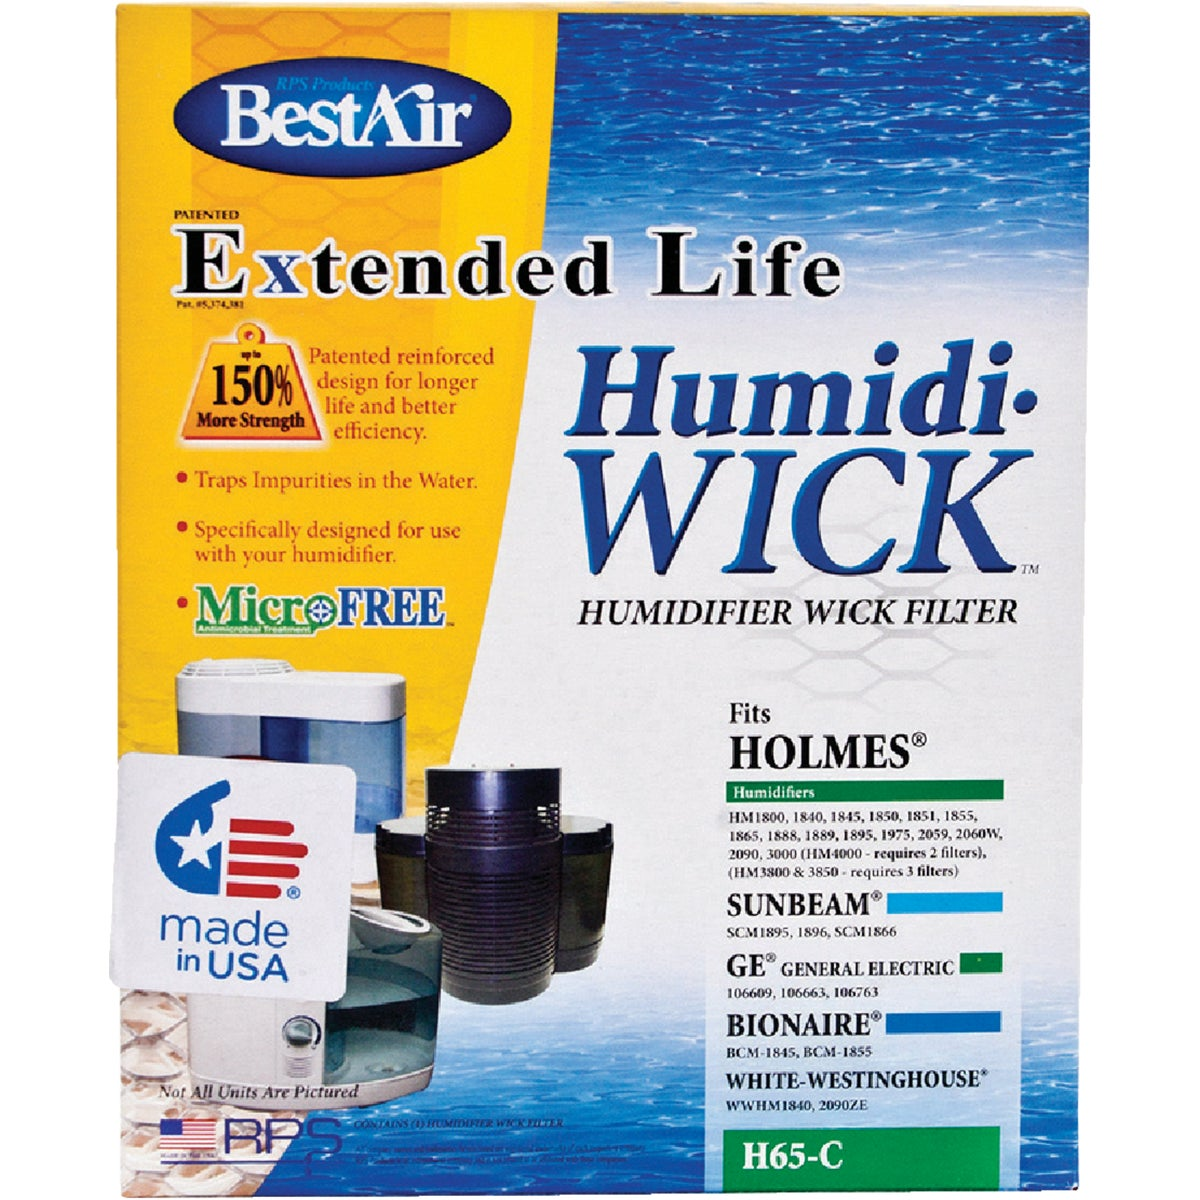 BestAir Extended Life Humidi-Wick Humidifier Wick Filter